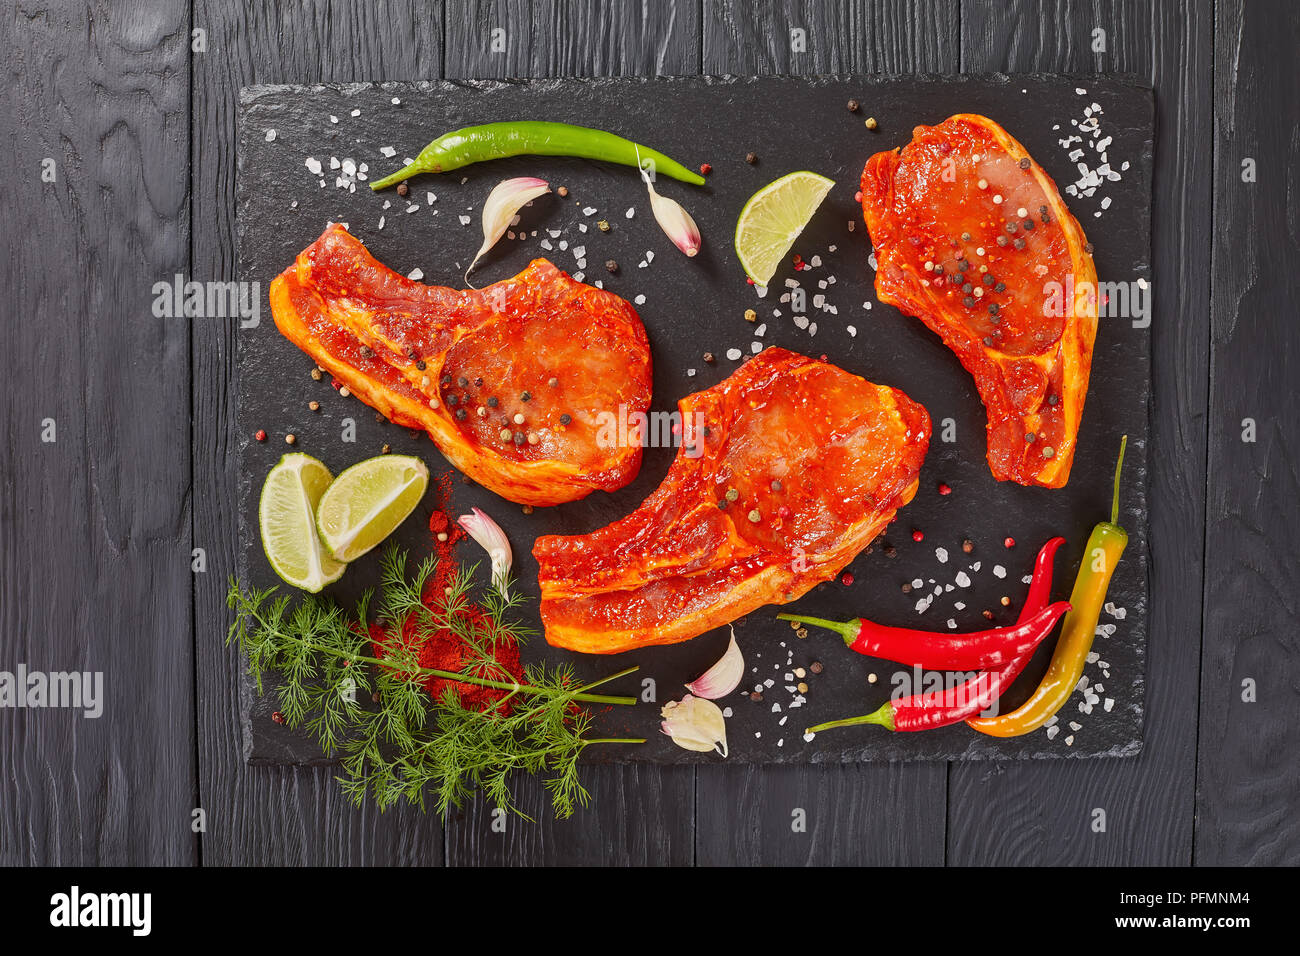 raw pork chops marinated with spices and red sriracha sauce on black slate tray with chili pepper, salt, lime slices and spices, view from above, flat Stock Photo